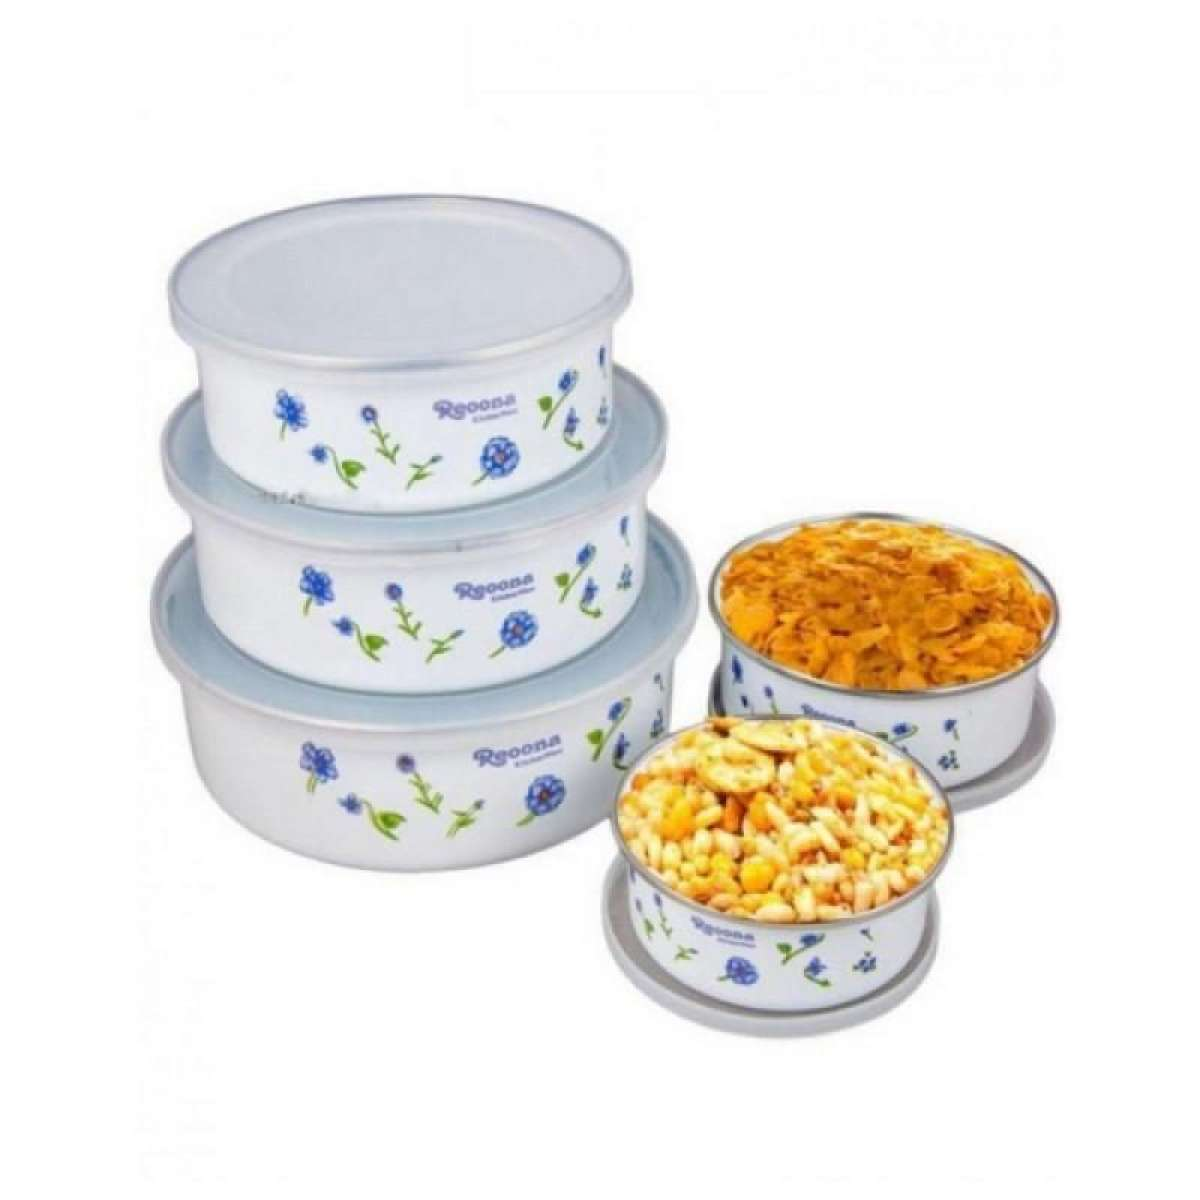 Kitchen Pot Set 5 PCS Gallery Image 2